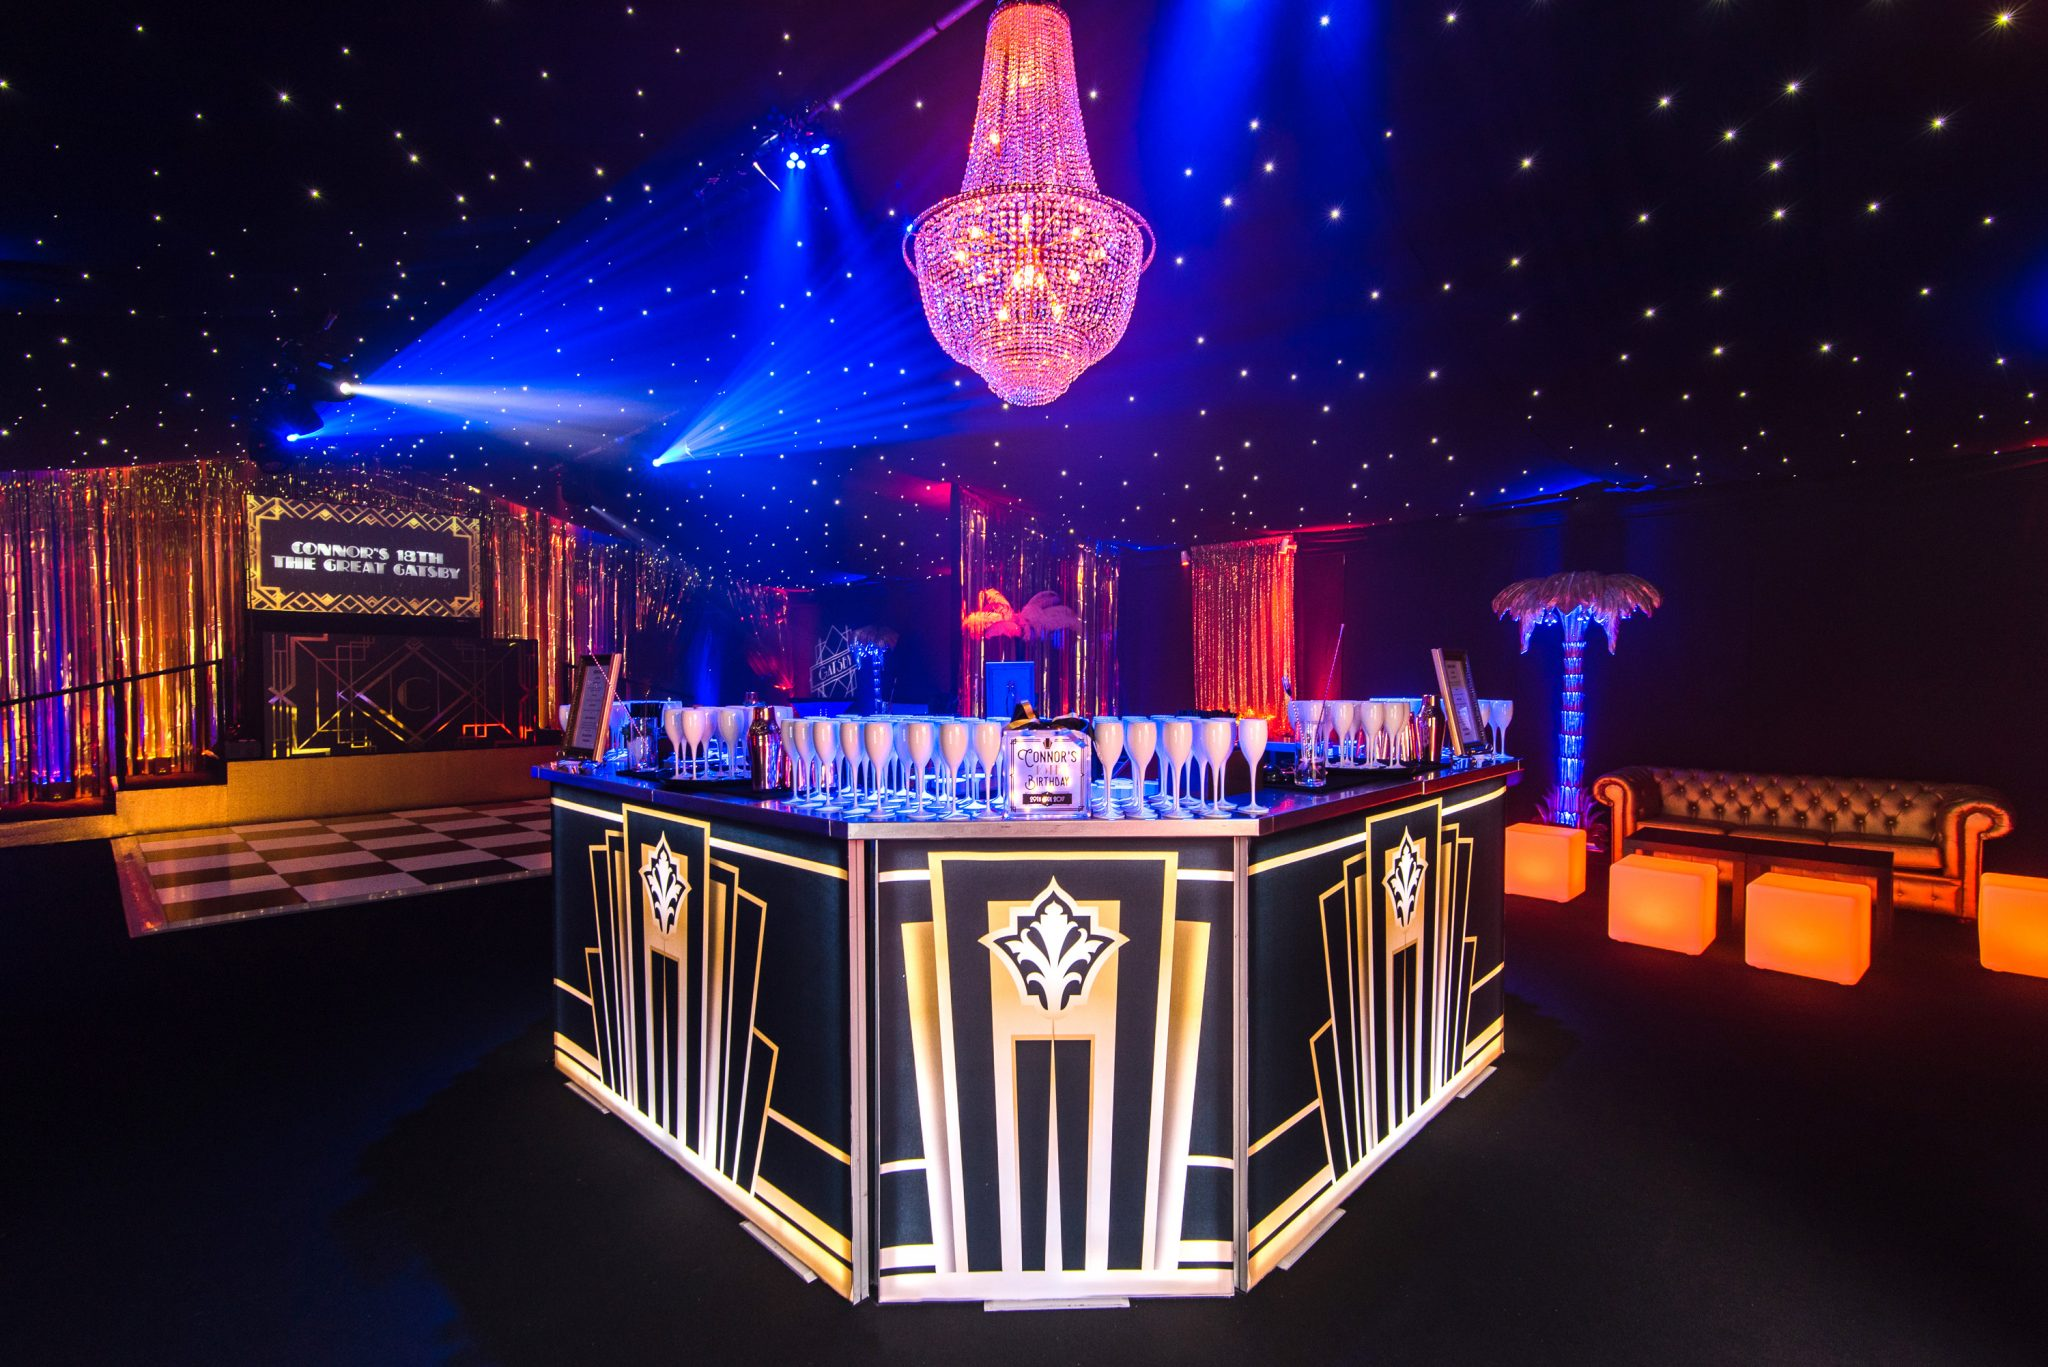 Discover our 1920s Island Bar for a Great Gatsby Themed